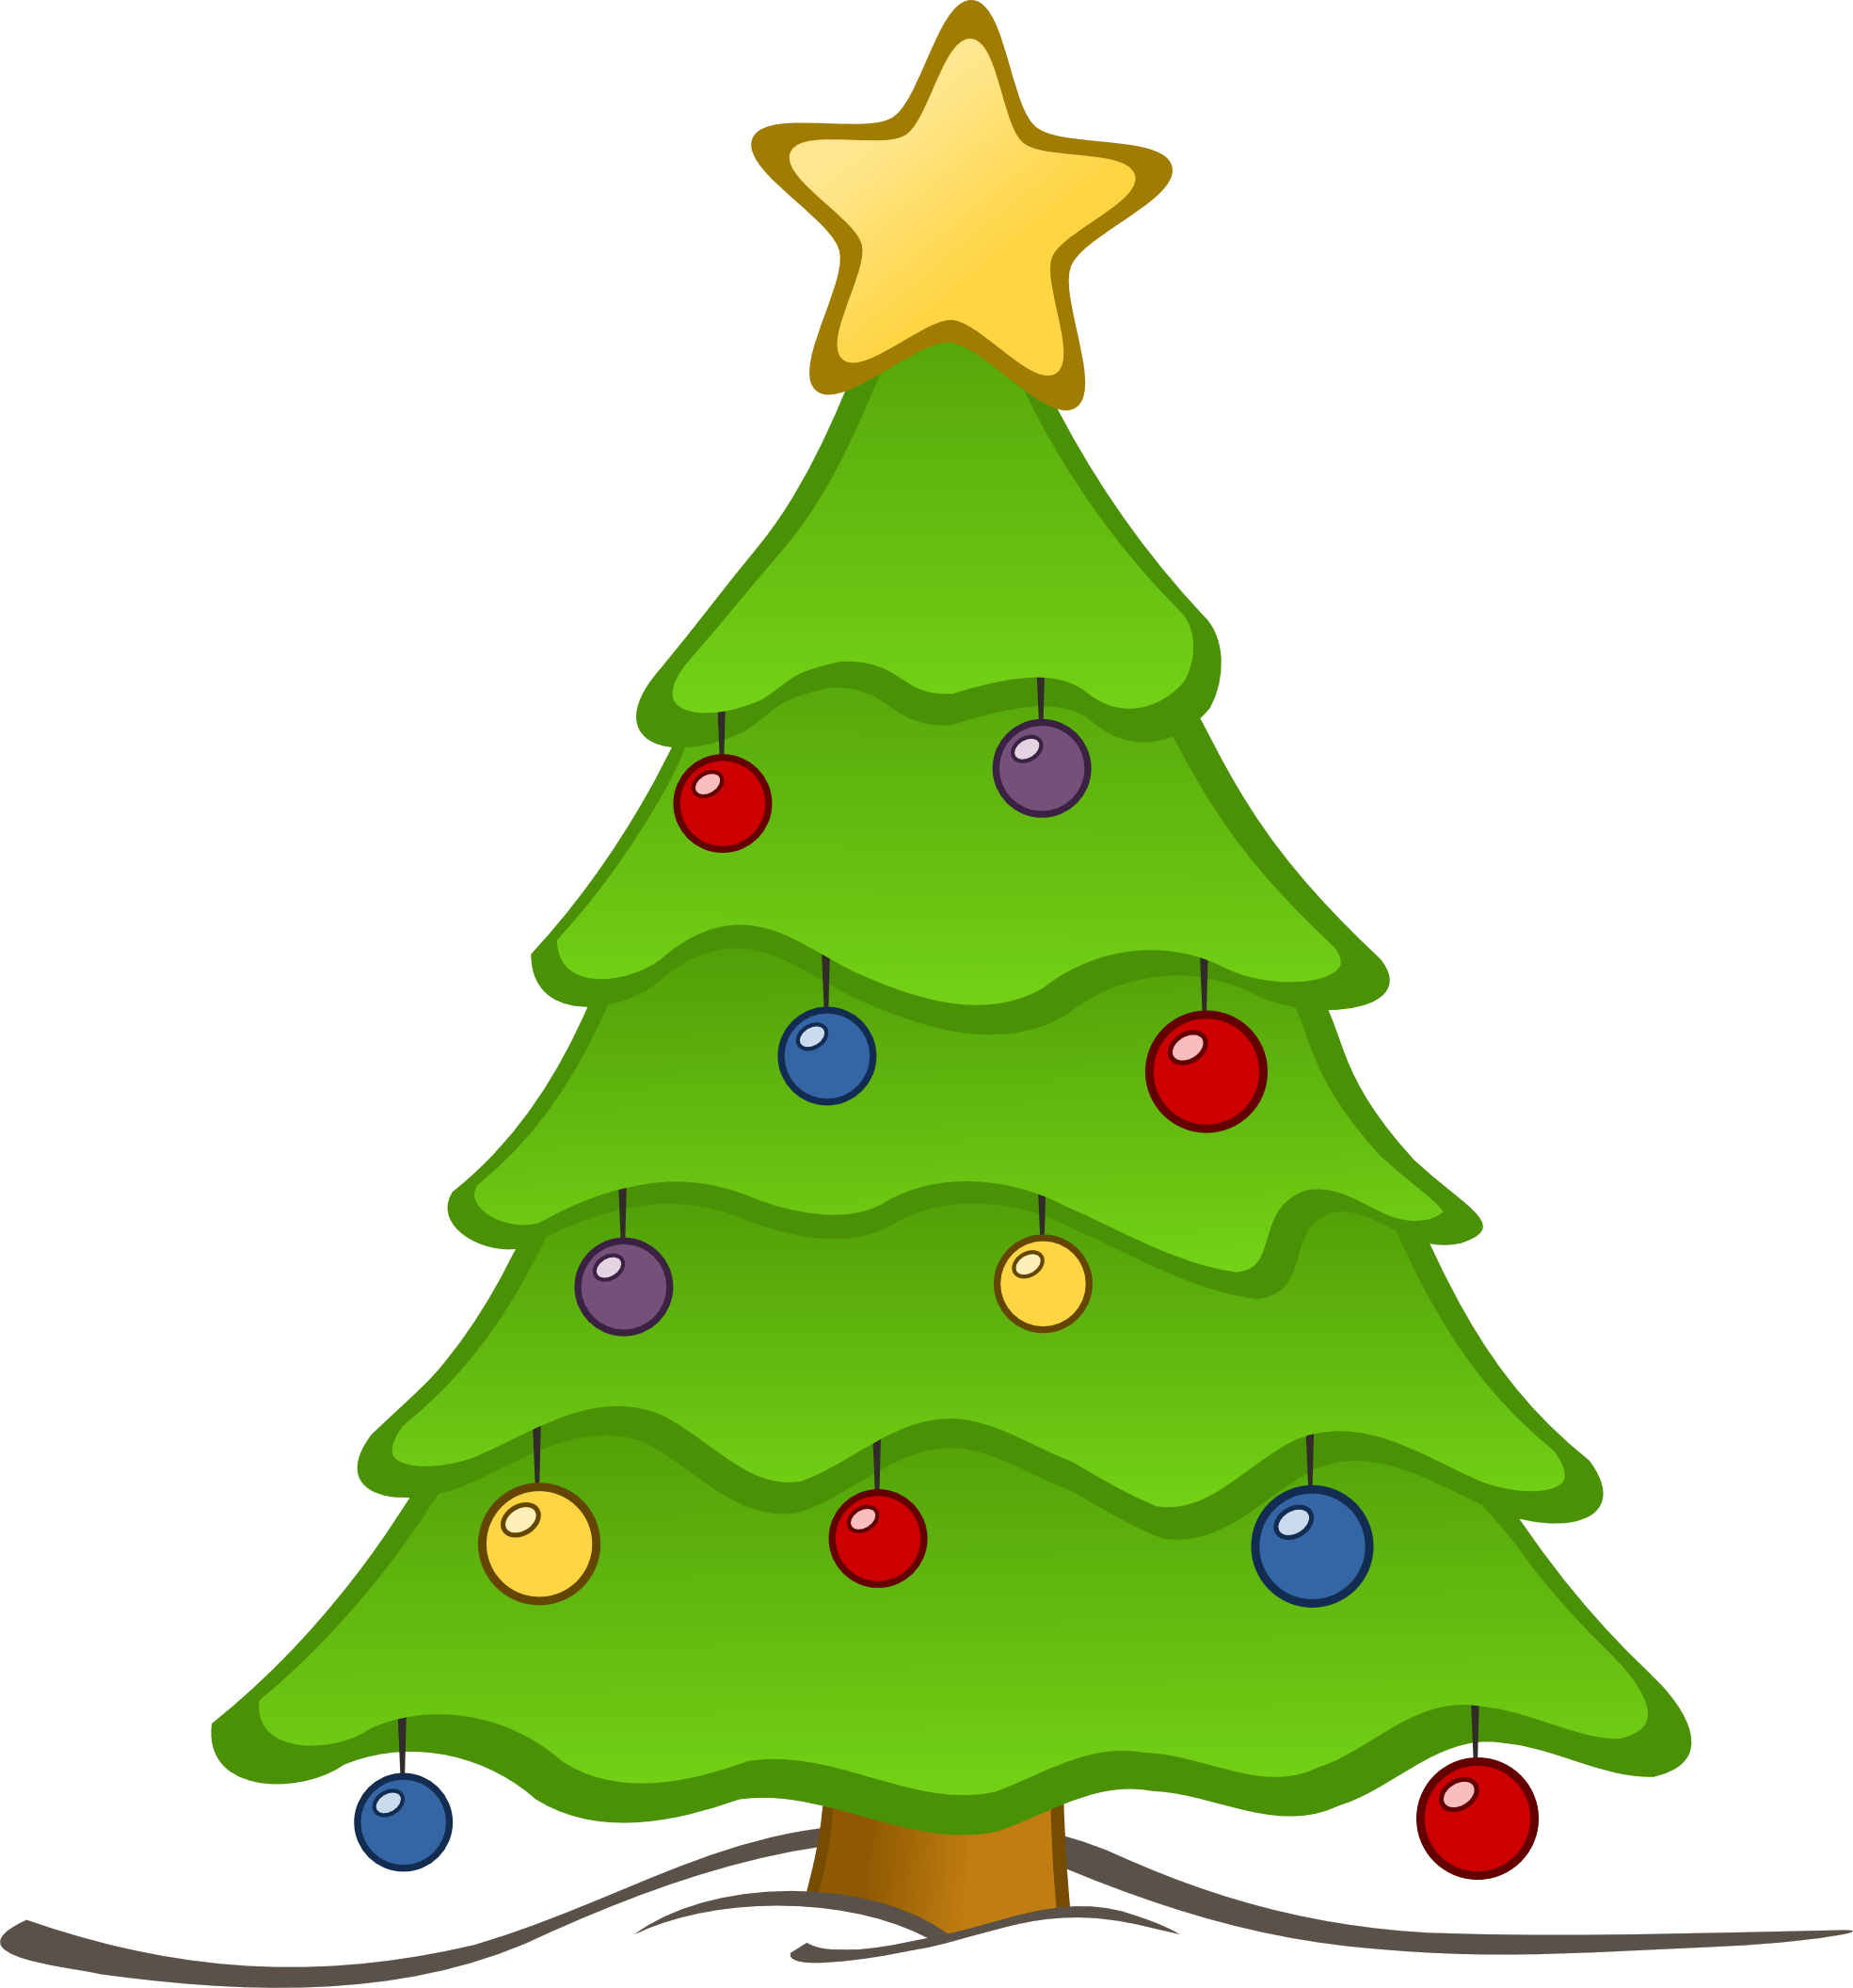 Christmas tree clipart no background 1 » Clipart Portal.